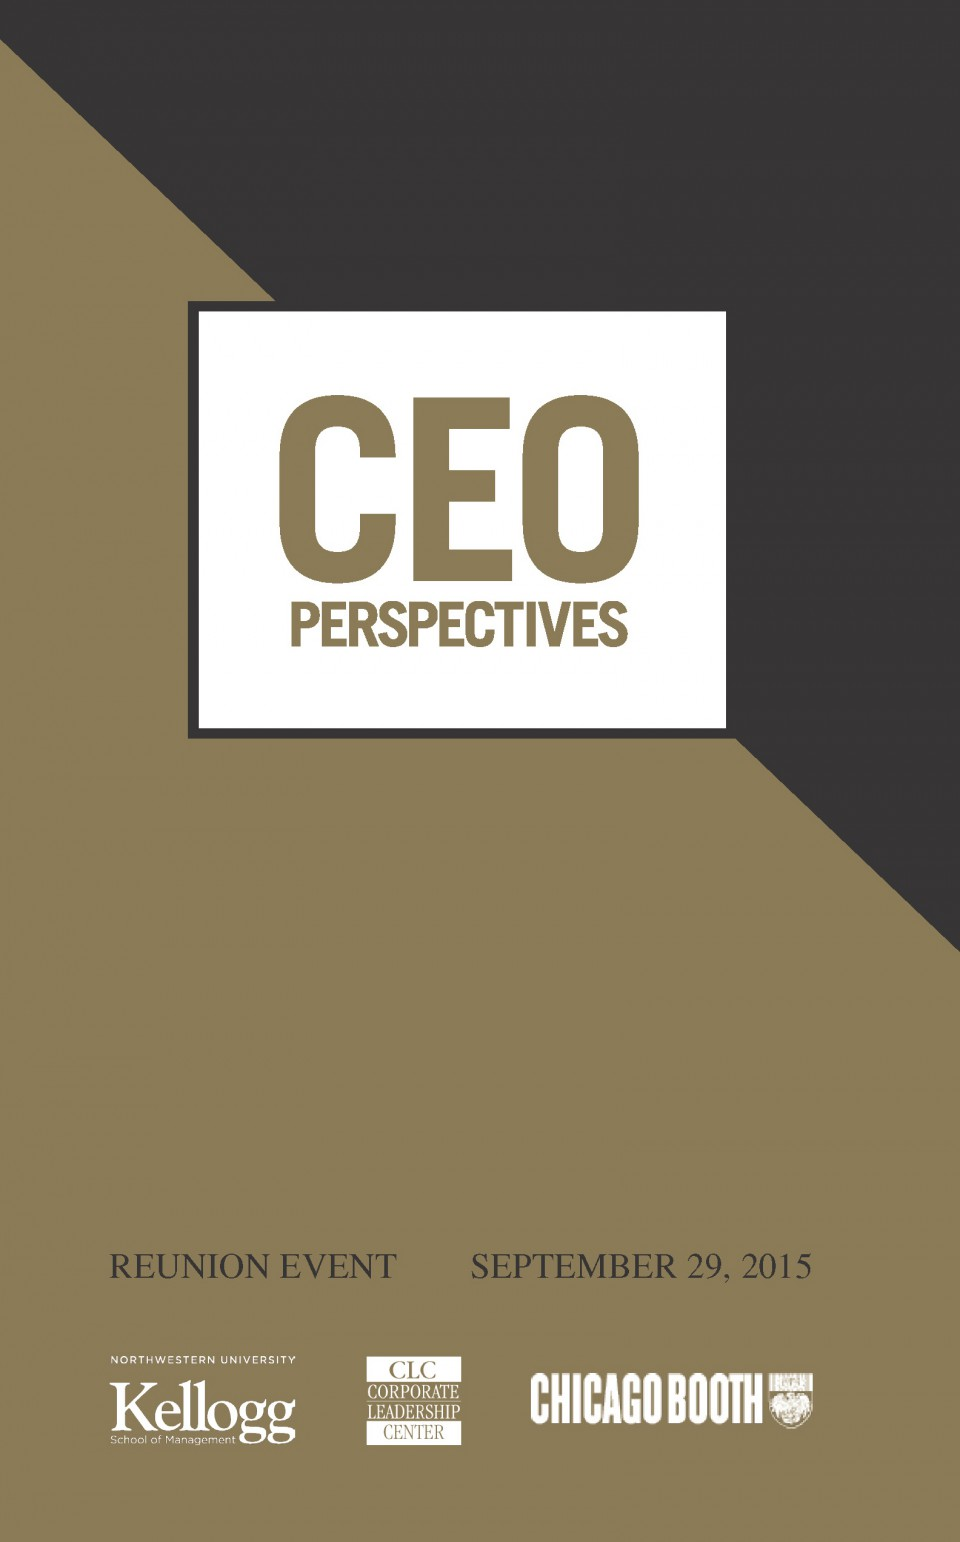 Cover image of ceo program design with gold and black